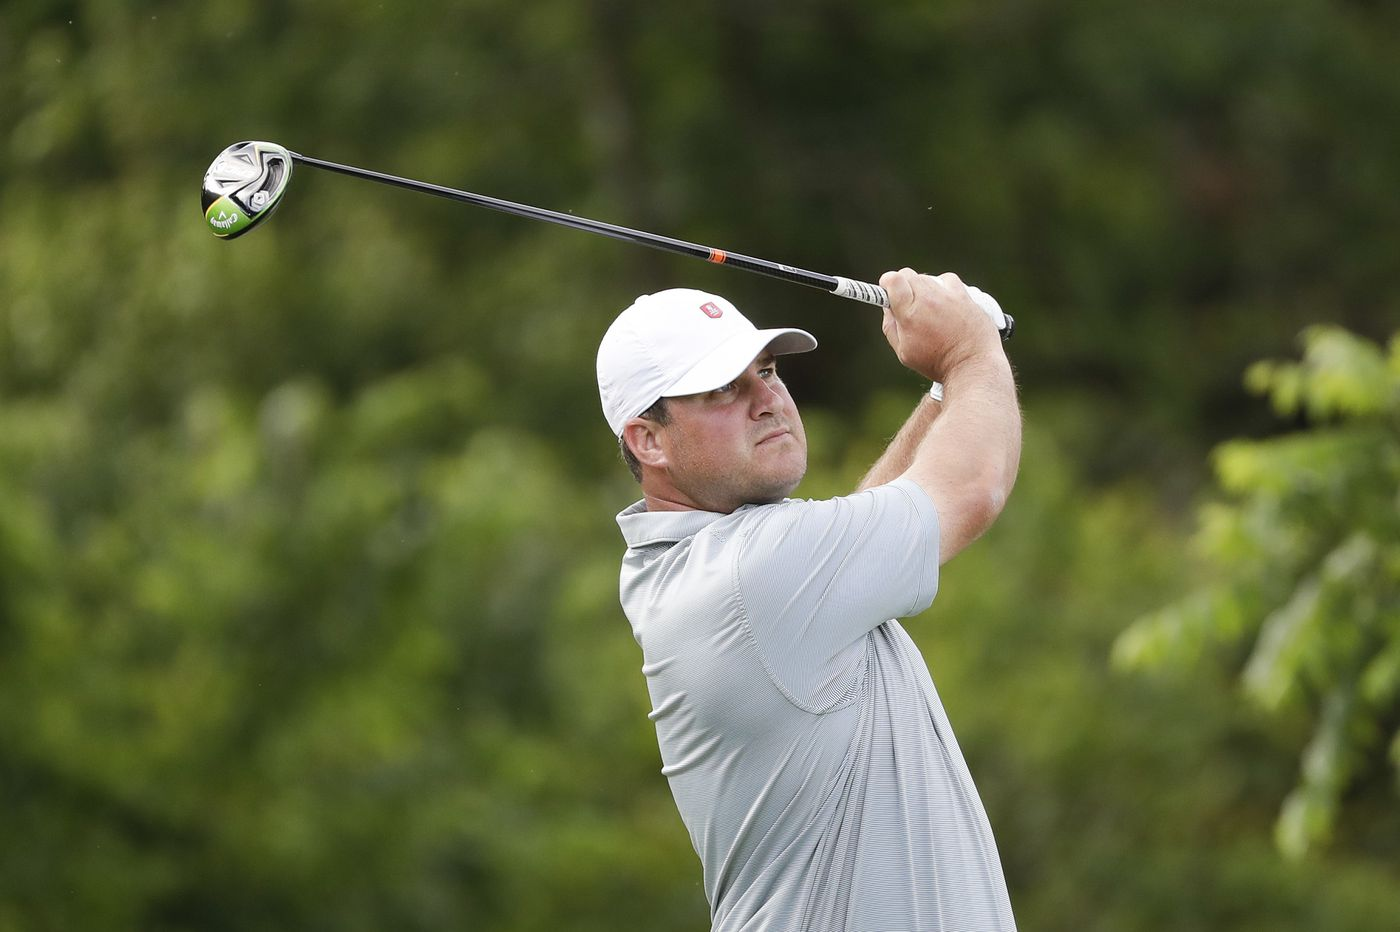 Davenport, Griffin finish as co-medalists in 18-hole stroke-play qualifying at Philadelphia Amateur